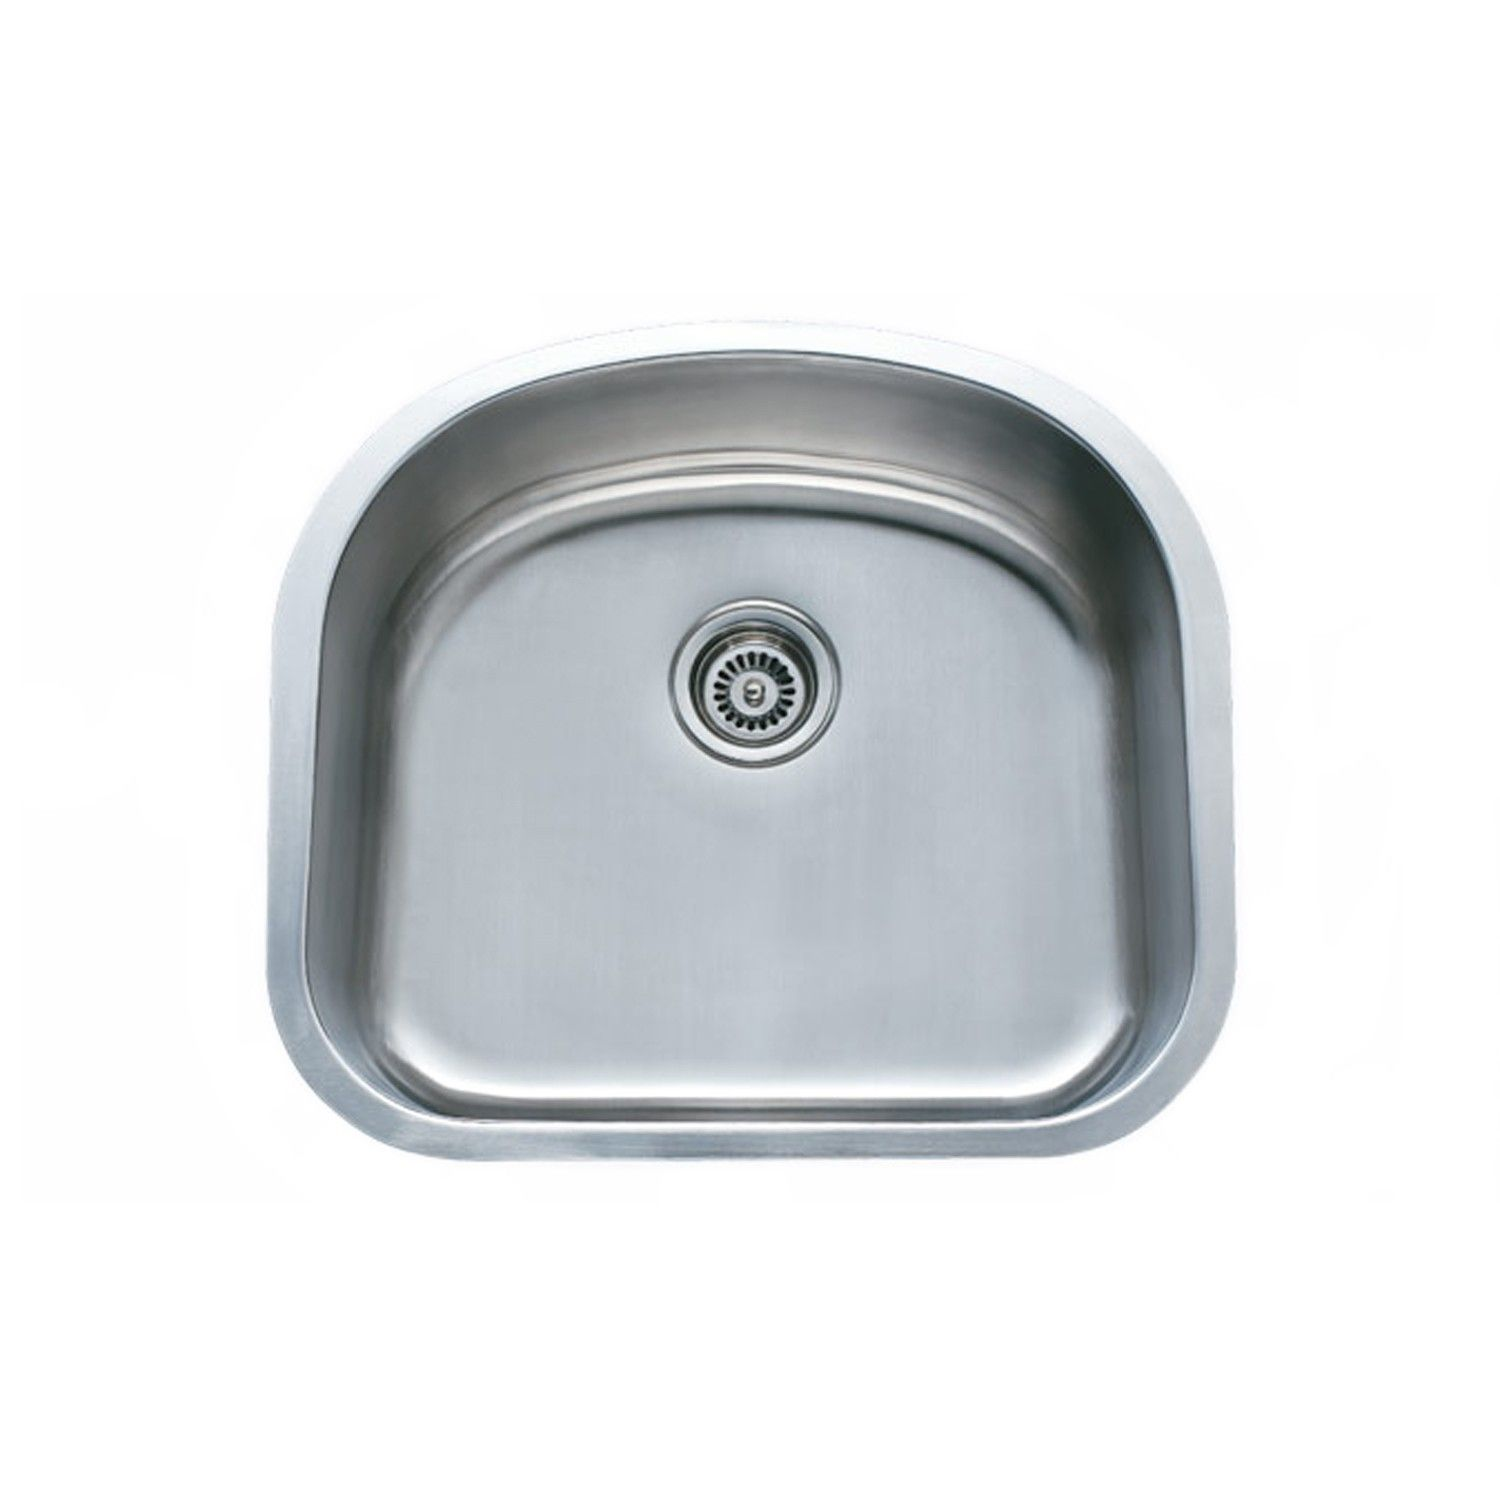 Omni Zeus Stainless Steel Sink 23 3 16 X 20 15 16 O D X 9 1 4 D 90 Sink Stainless Steel Undermount